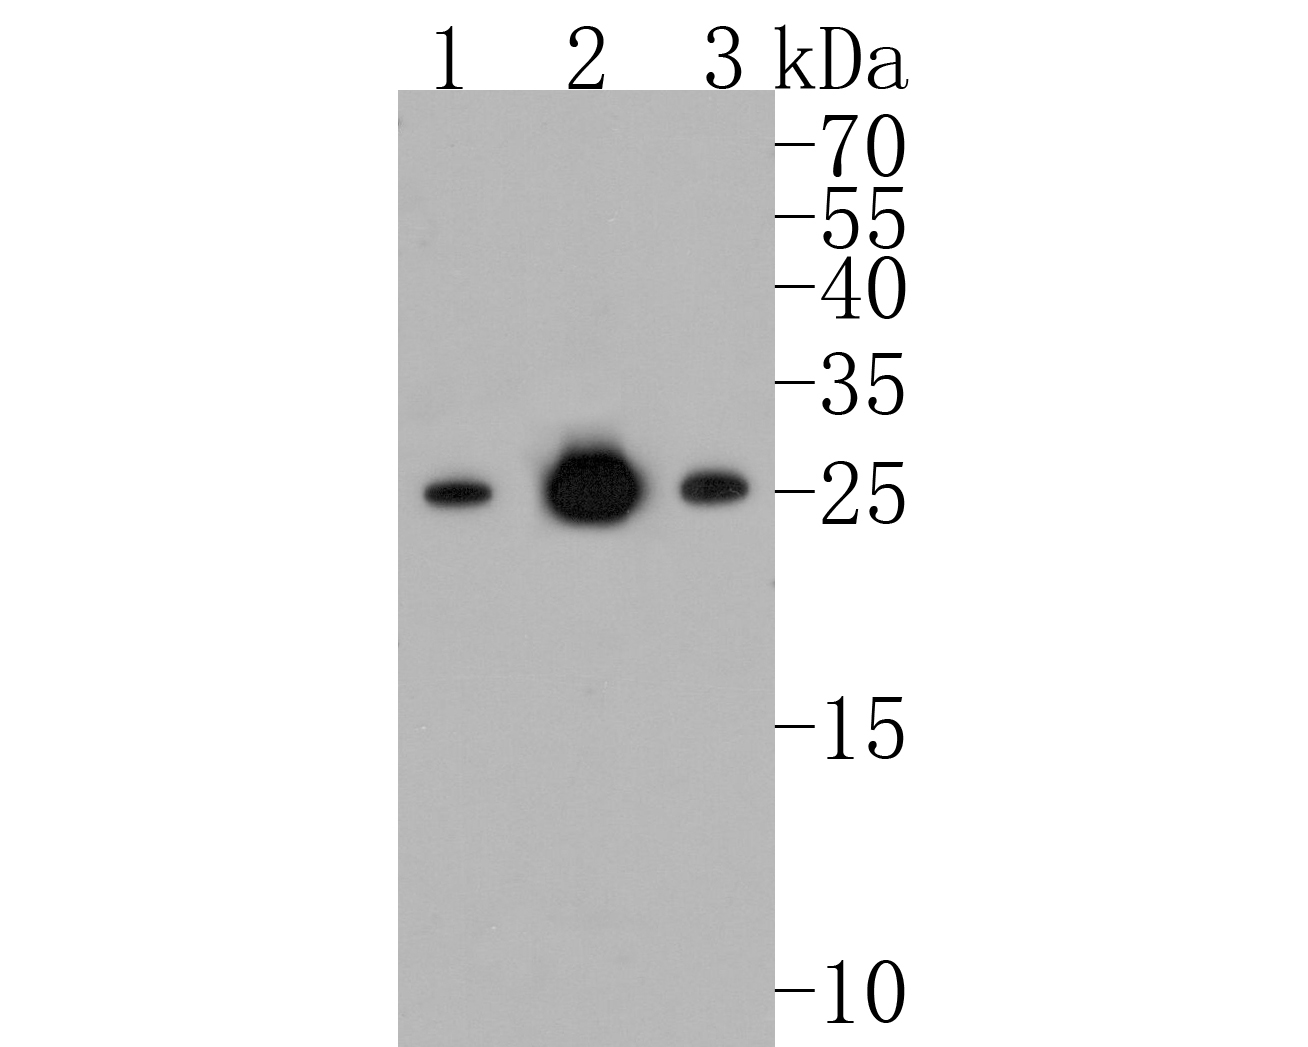 Western blot analysis of Bcl-2 on different lysates. Proteins were transferred to a PVDF membrane and blocked with 5% BSA in PBS for 1 hour at room temperature. The primary antibody (ET1702-53, 1/500) was used in 5% BSA at room temperature for 2 hours. Goat Anti-Rabbit IgG - HRP Secondary Antibody (HA1001) at 1:5,000 dilution was used for 1 hour at room temperature.<br /> Positive control: <br /> Lane 1: Hela cell lysate<br /> Lane 2: Jurkat cell lysate<br /> Lane 3: MCF-7 cell lysate